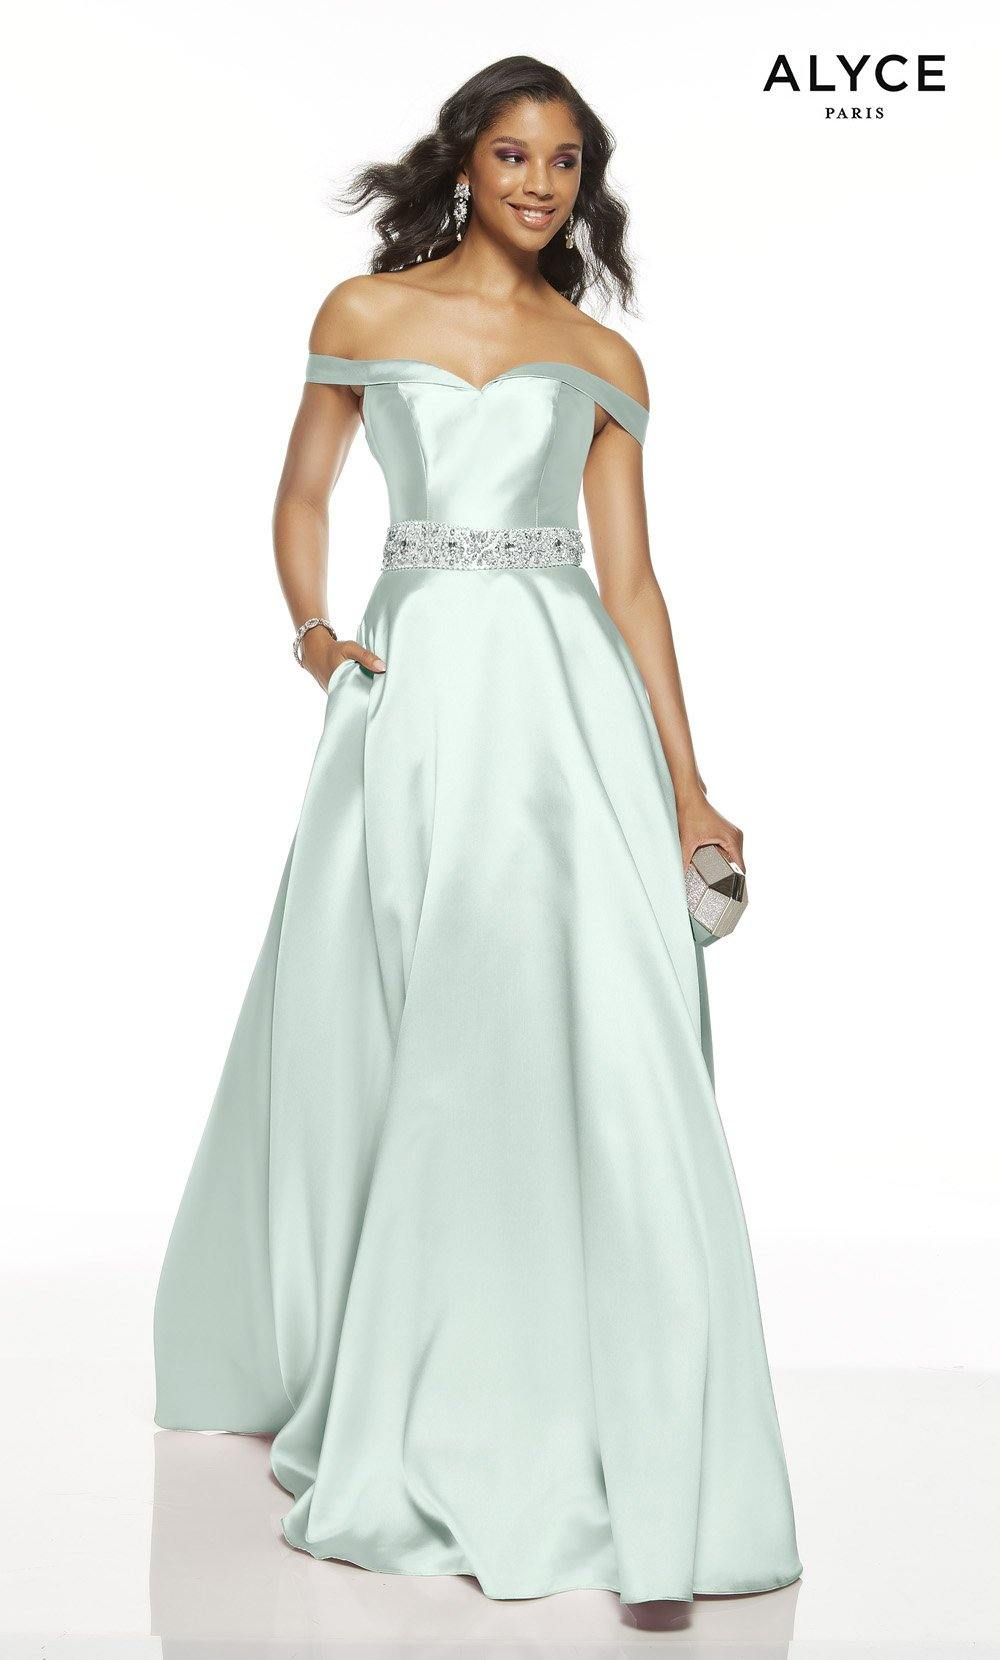 Sea Glass off the shoulder formal dress with pockets